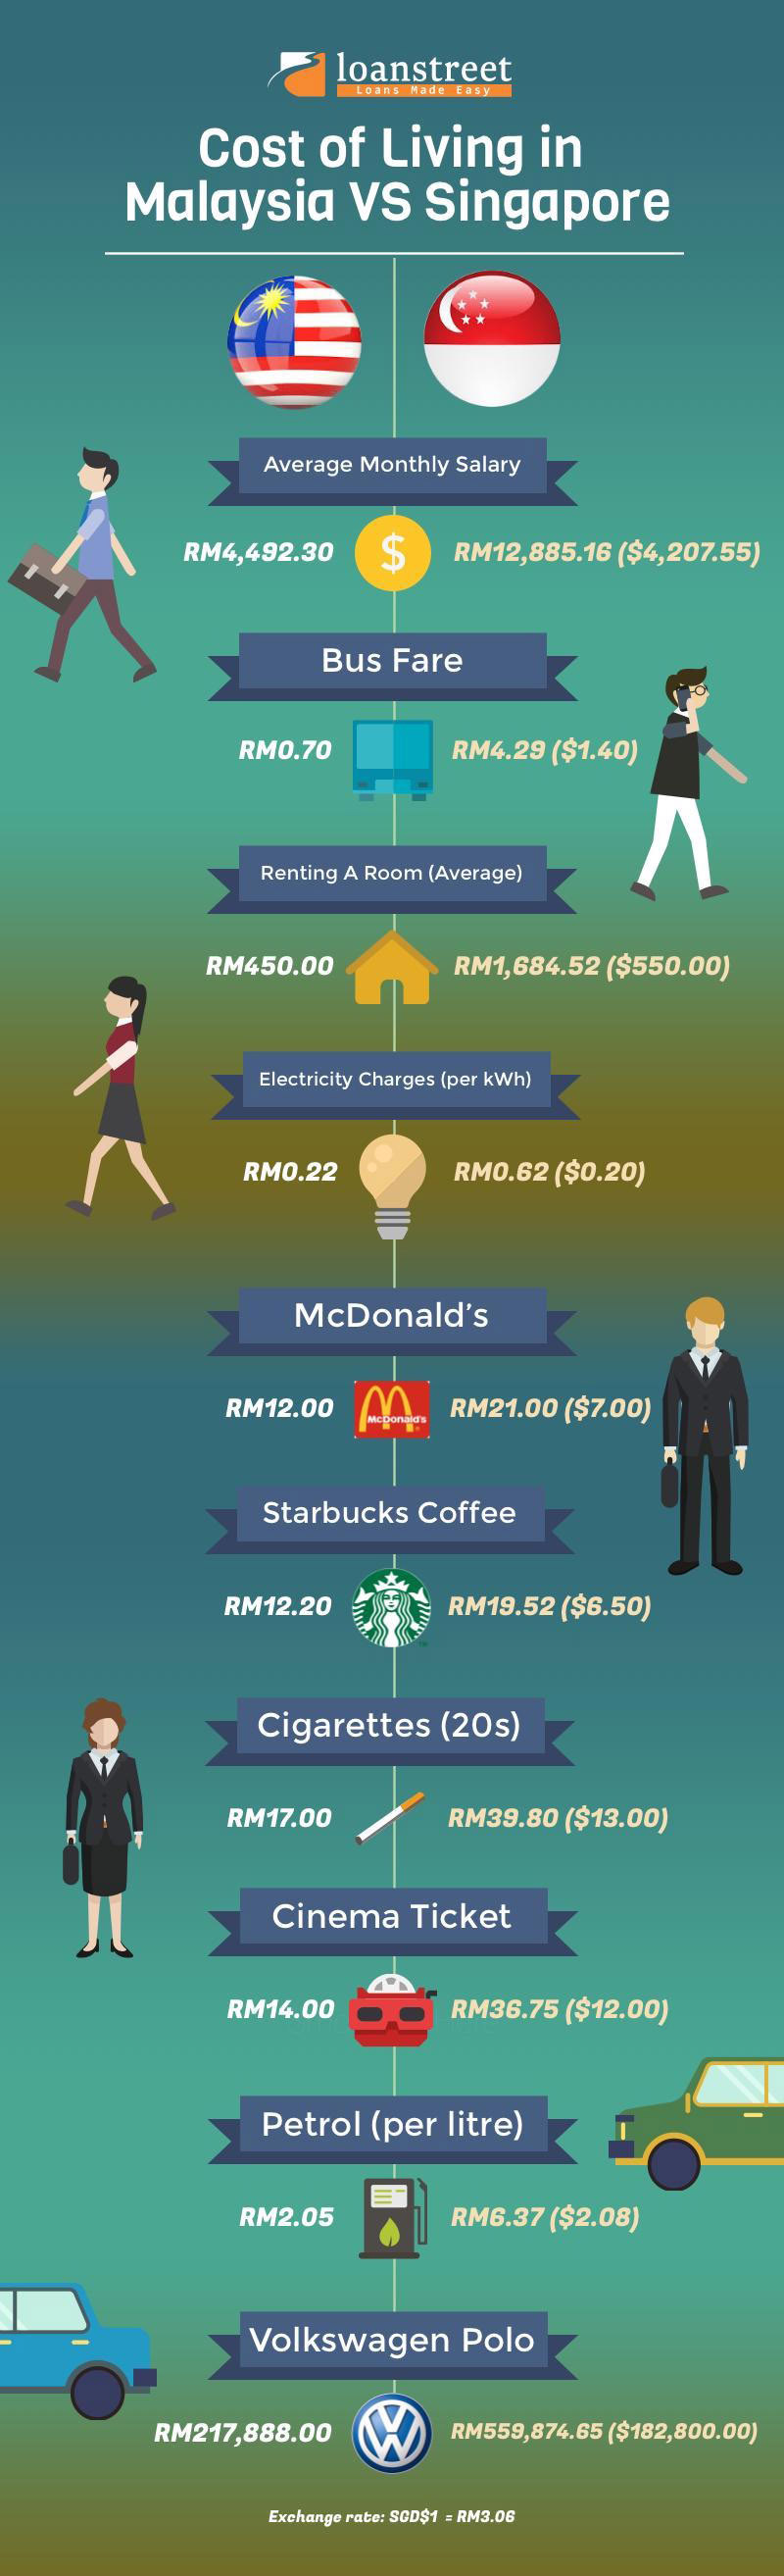 Cost of Living in Malaysia